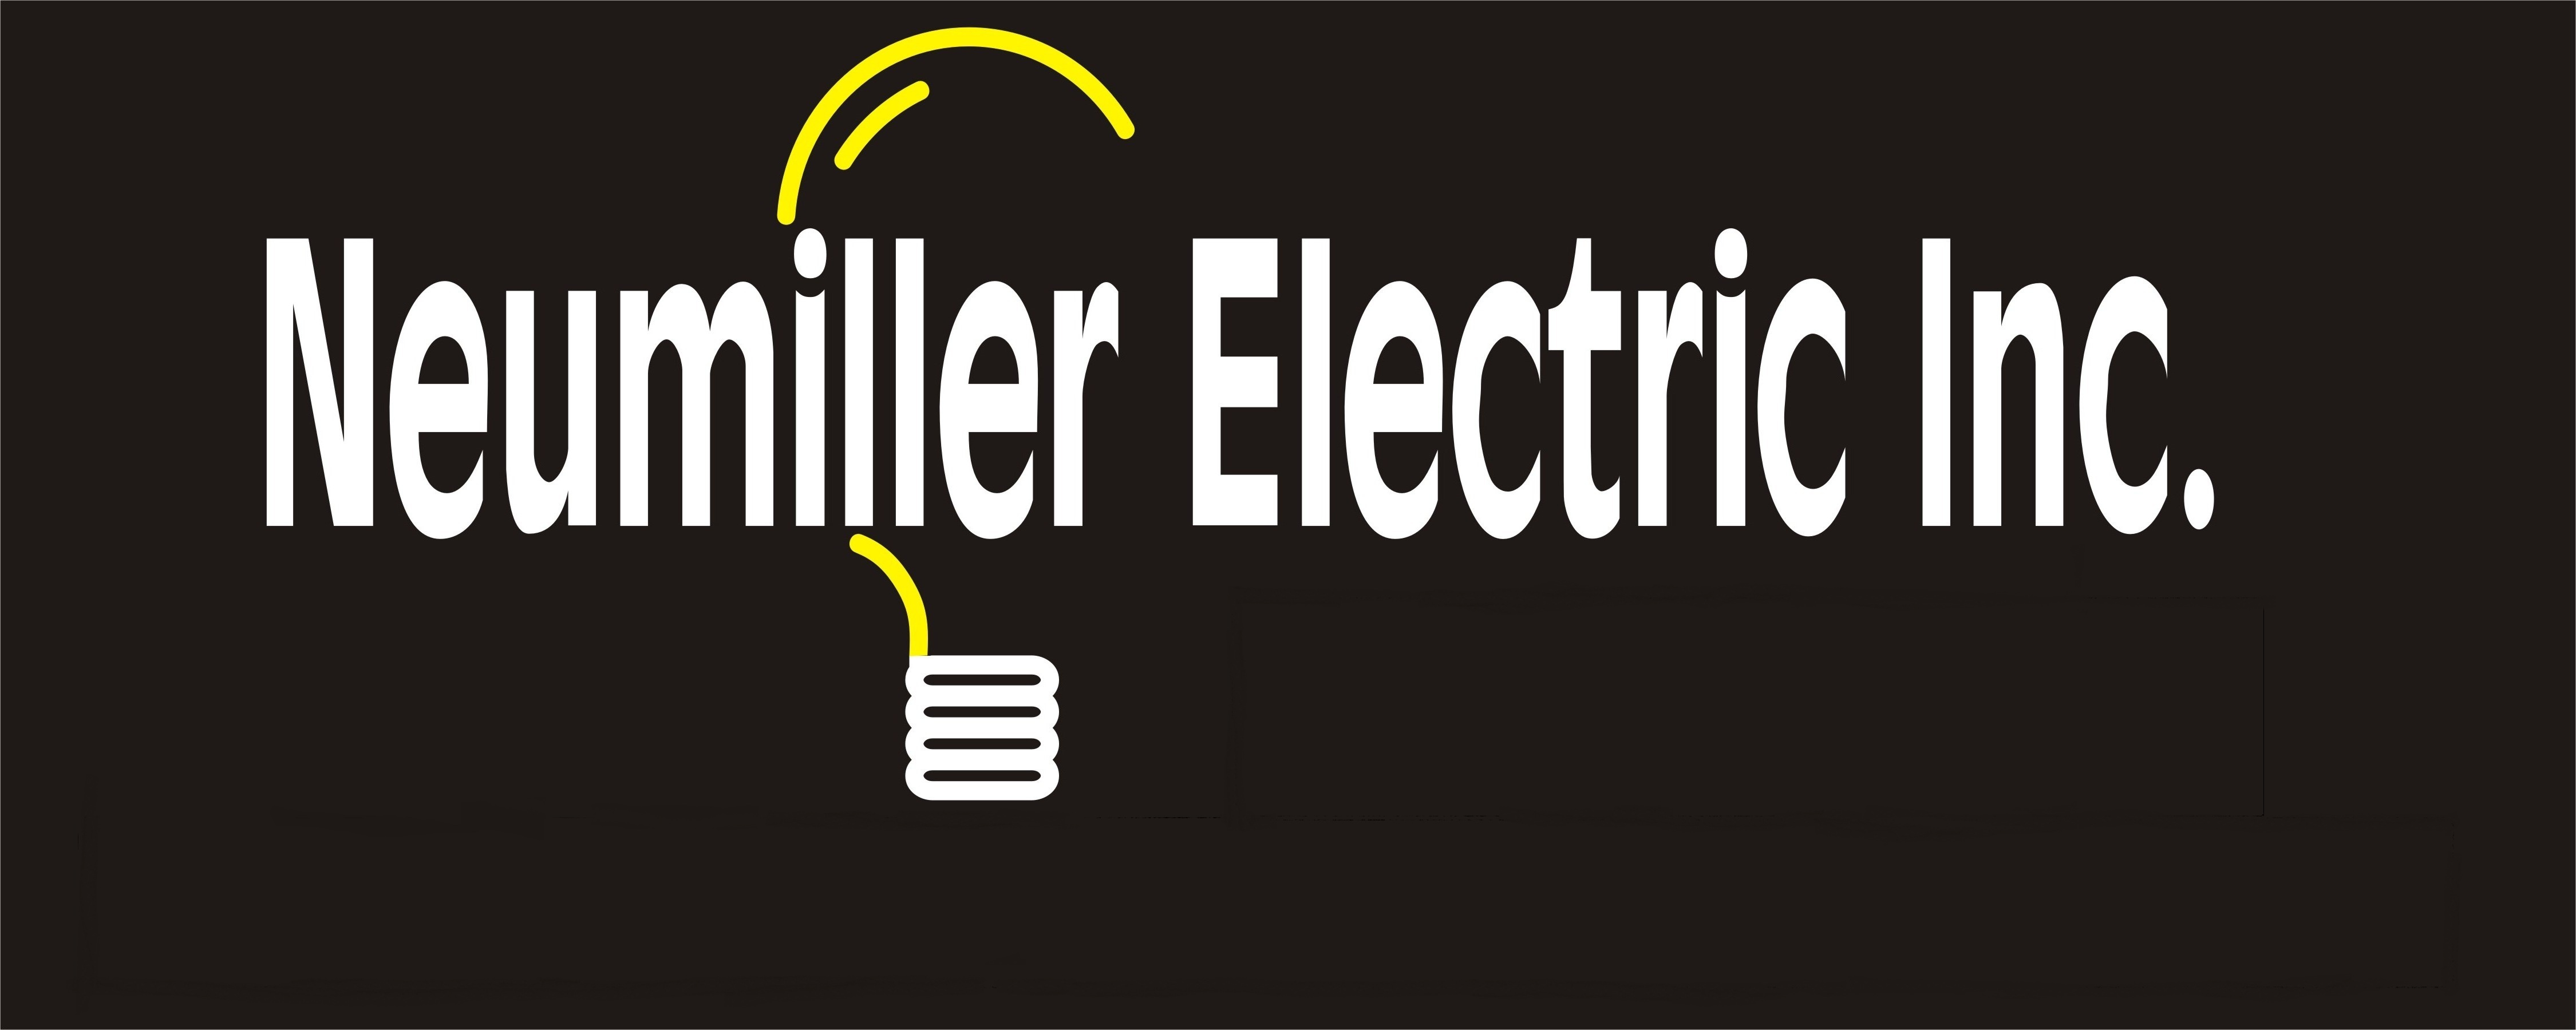 Neumiller Electric